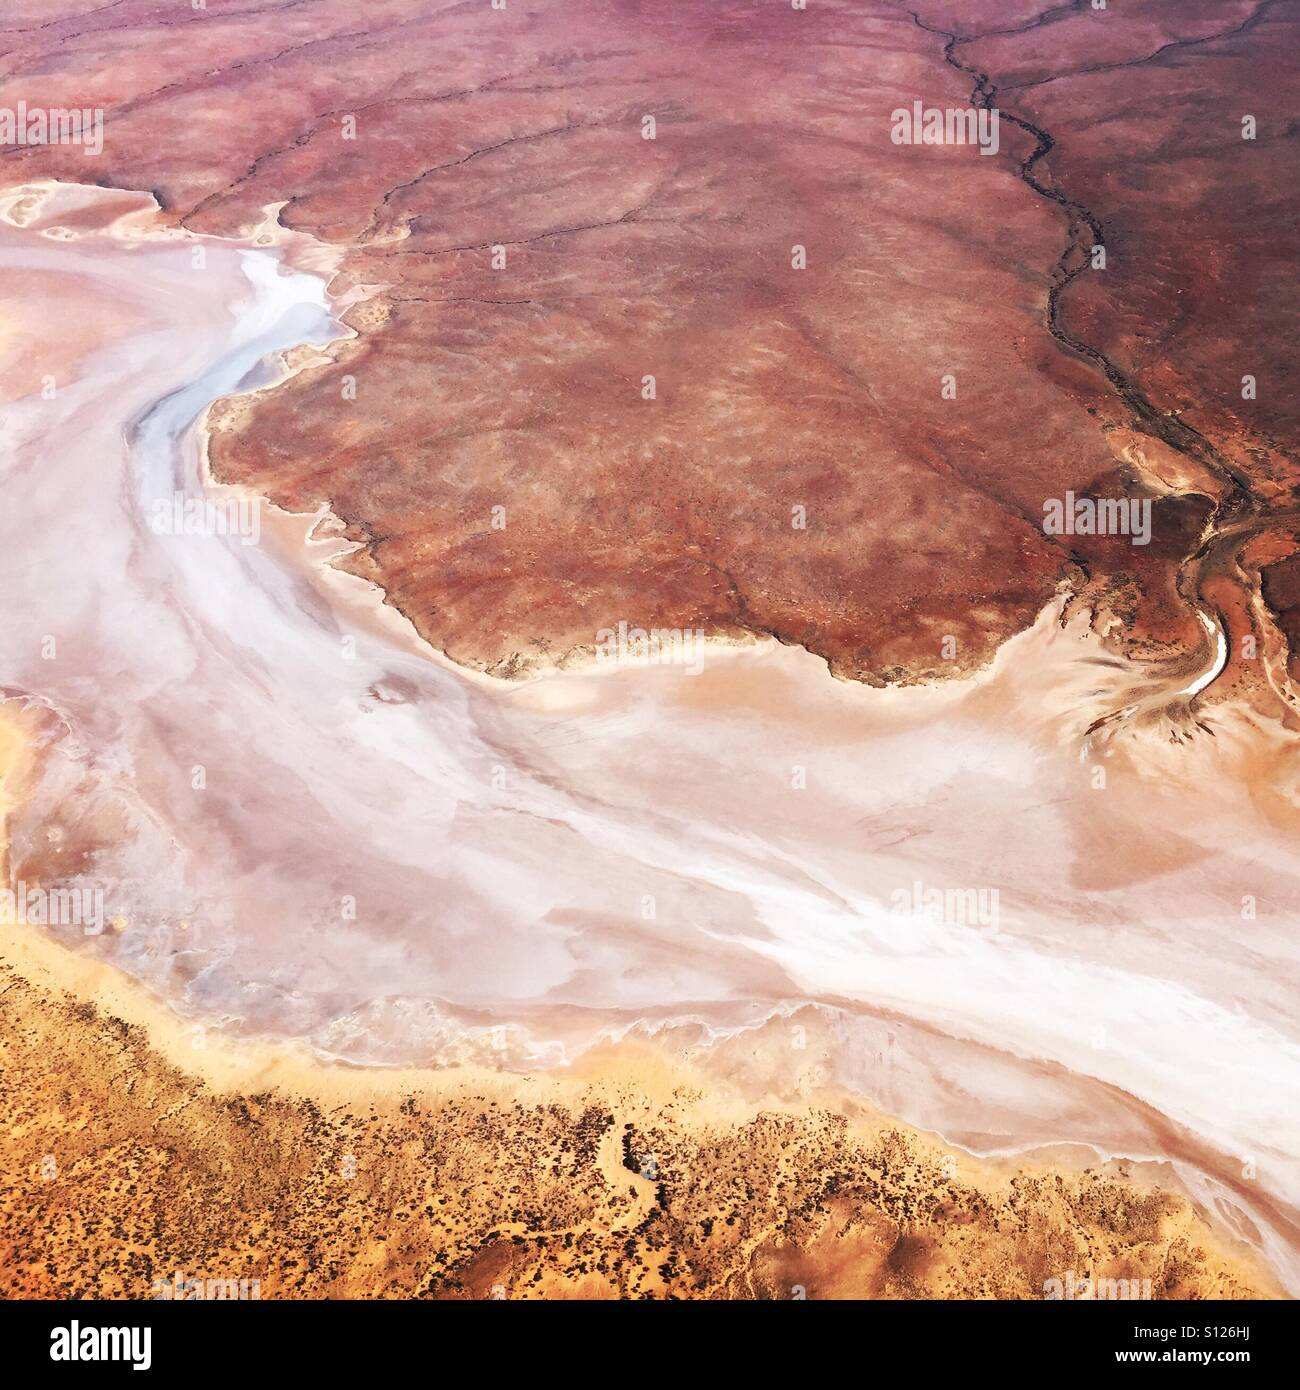 Flying over the South Australian outback - Stock Image